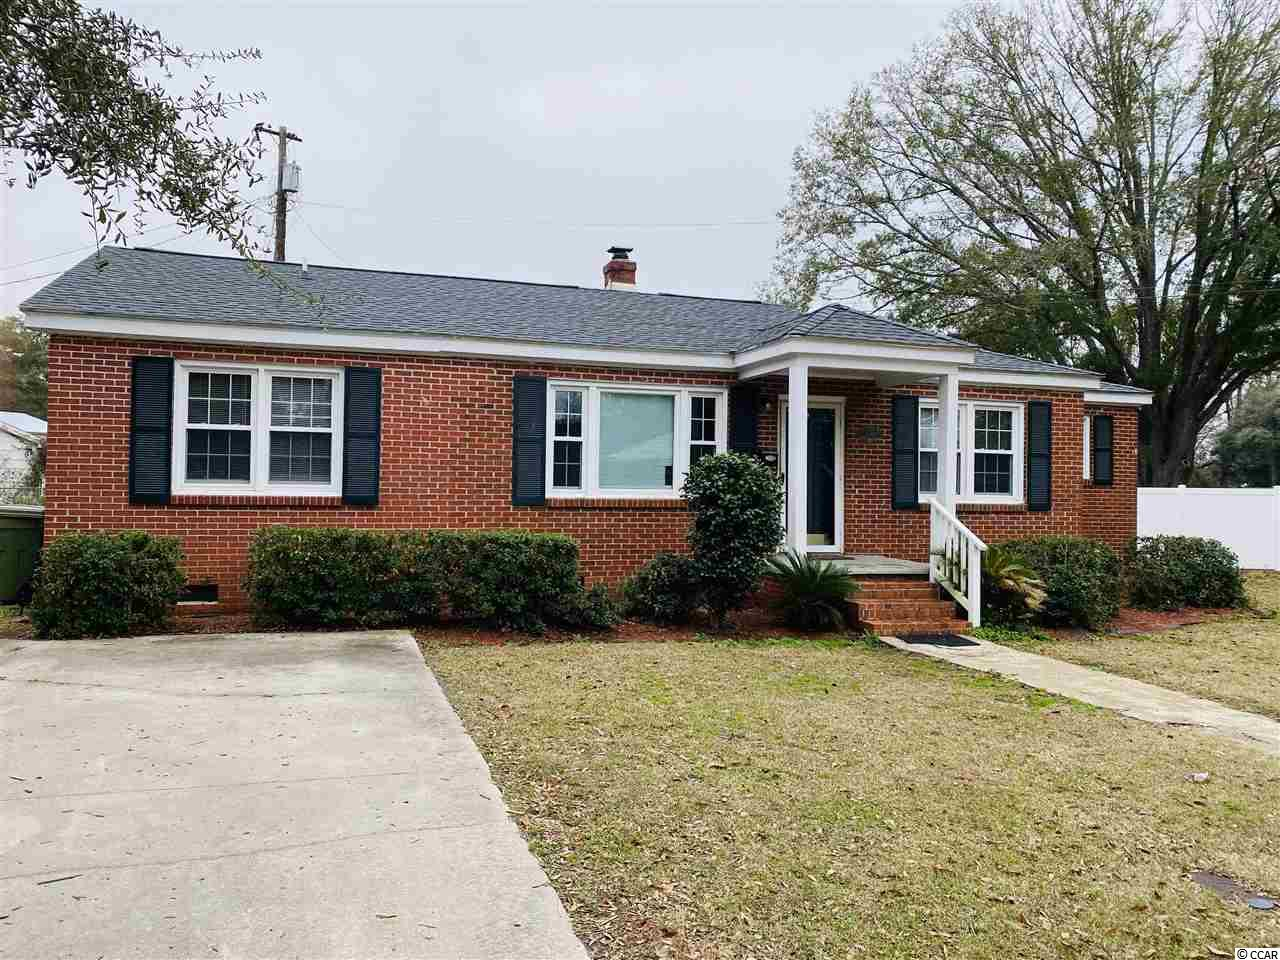 "Bring your things, 1309 Saville Street is ready for you! This is a fantastic 3 bedroom 2 bath home, with so many updates including newer roof and HVAC, and is ""Move in Ready""! Nestled within Richmond Plantation neighborhood, you're close to the newly remodeled Tidelands Hospital, grocery stores and just a mile from the downtown shops and restaurants of the Historic District. This home has it all from hardwood flooring throughout, a dining room and separate living area. With all of this and more, your mind should be put at ease while renting and loving, this one level, brick home.  Each applicant is required to pass a SLED Credit and Background check."